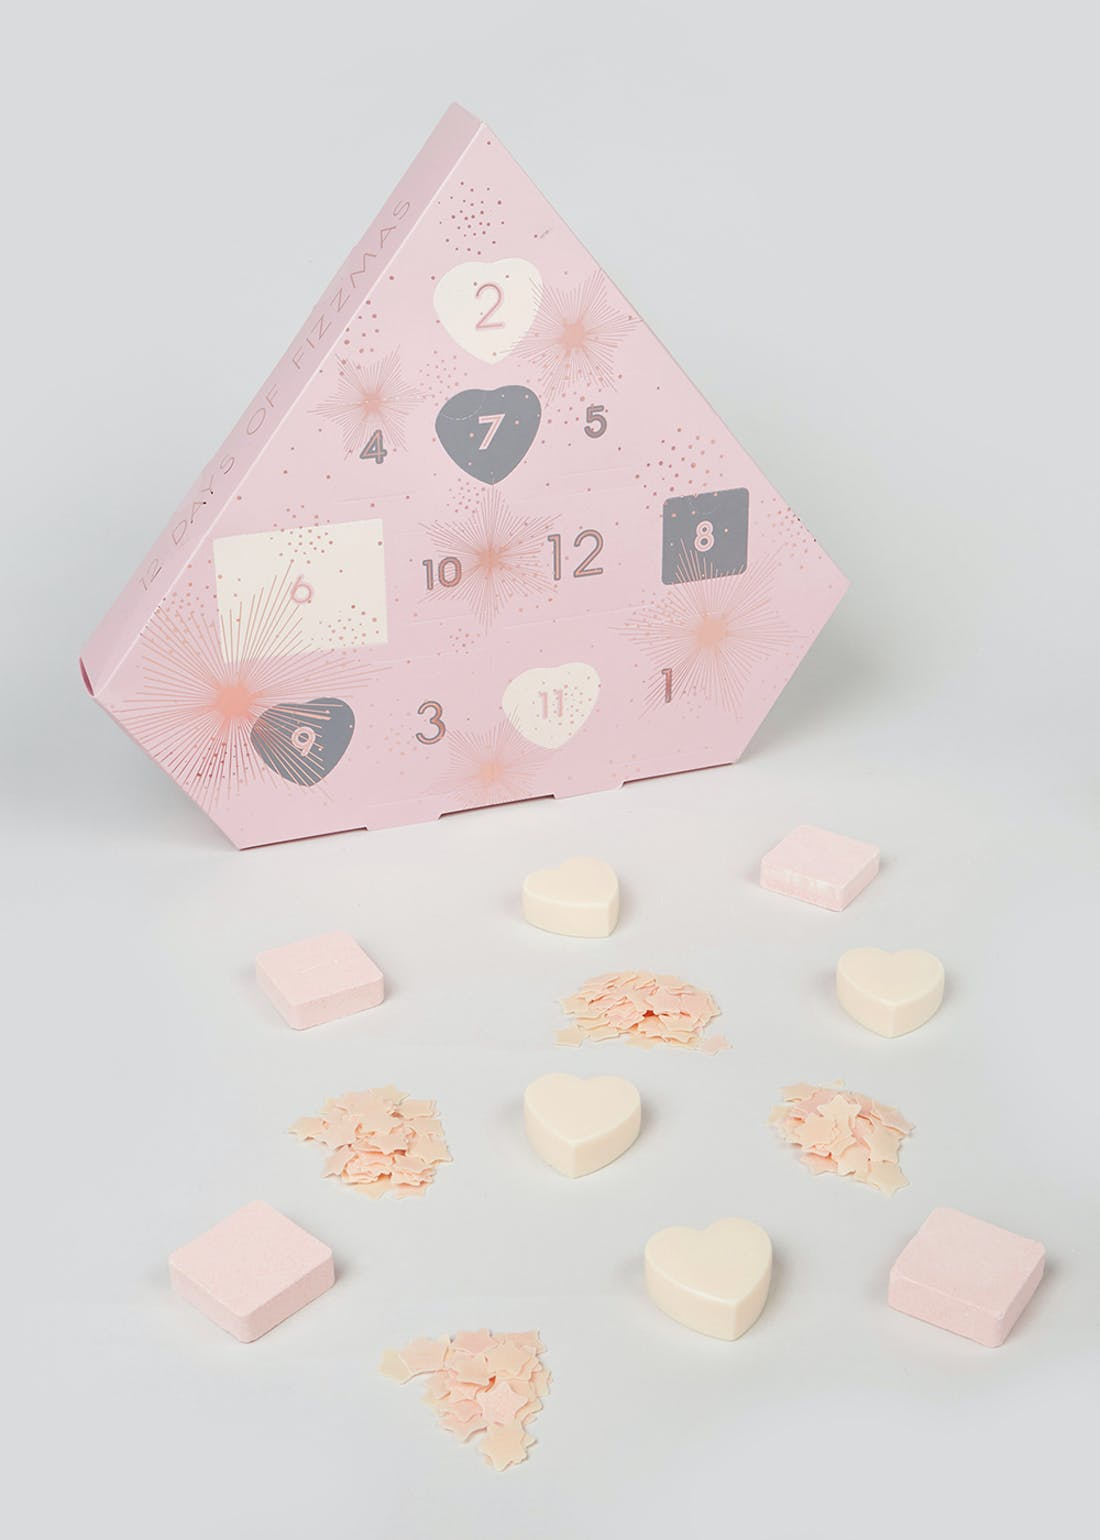 12 Days of Fizzmas Advent Calendar (39cm x 34.5cm x 5cm)